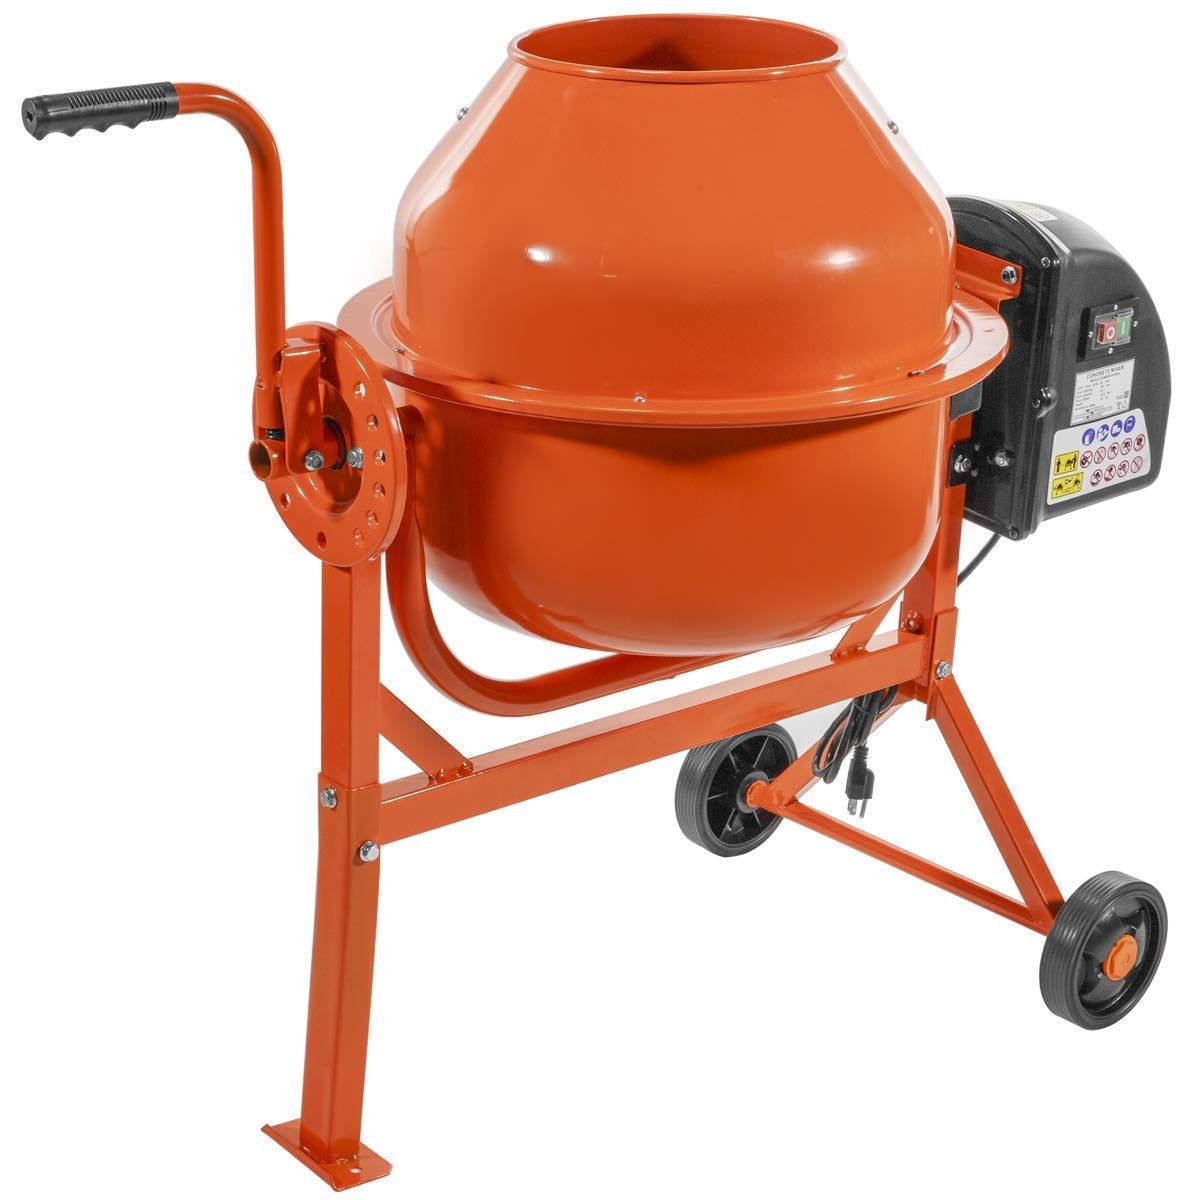 Stkusa 2 1 4 Cubic Feet Portable Electric Concrete Cement Mixer Barrow Machine Mixing Mortar Cement Mixers Concrete Cement Concrete Mixers